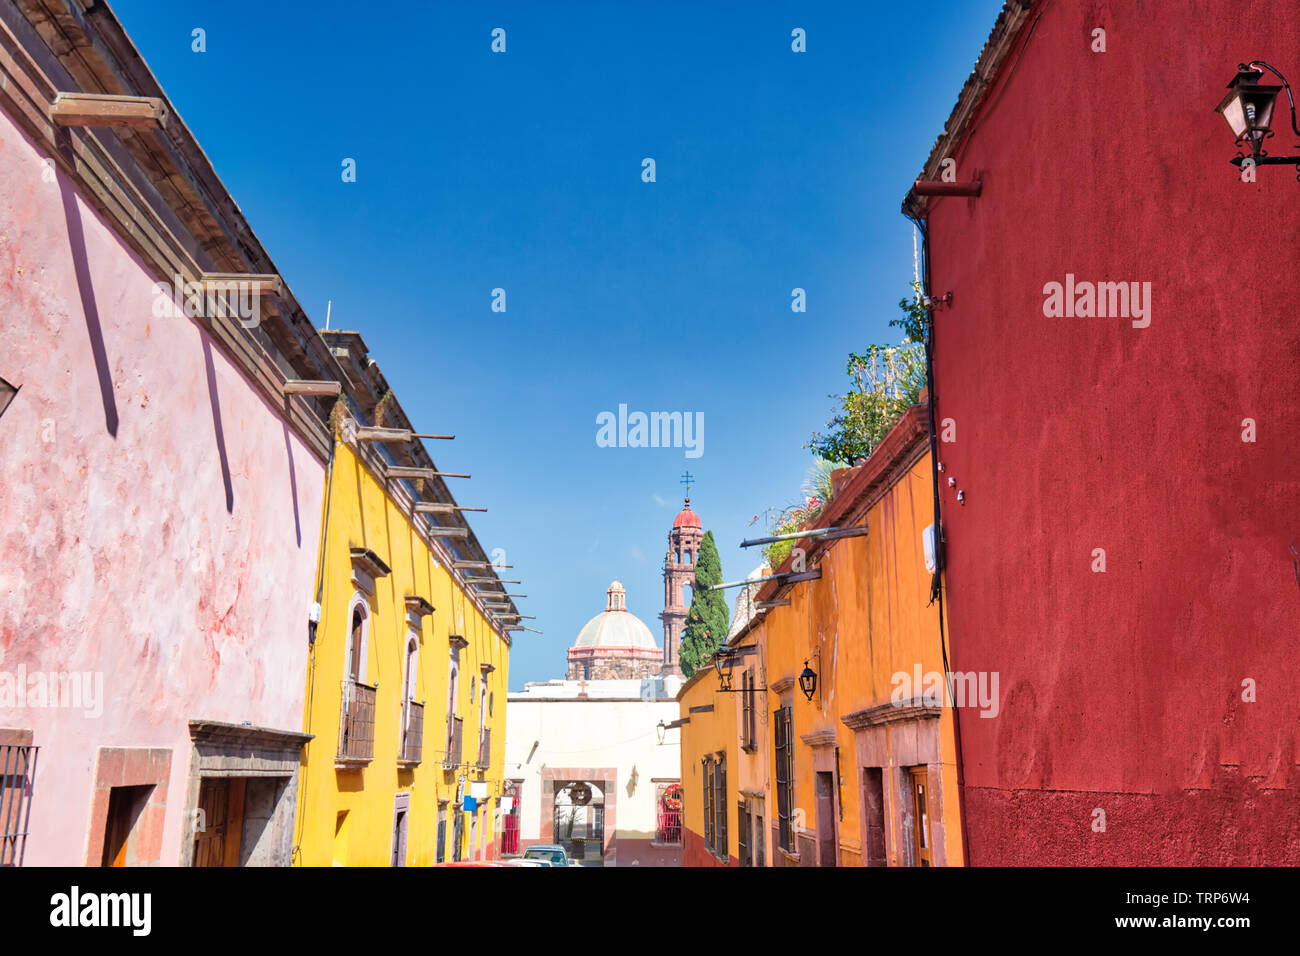 Mexico, Colorful buildings and streets of San Miguel de Allende in historic city center Stock Photo